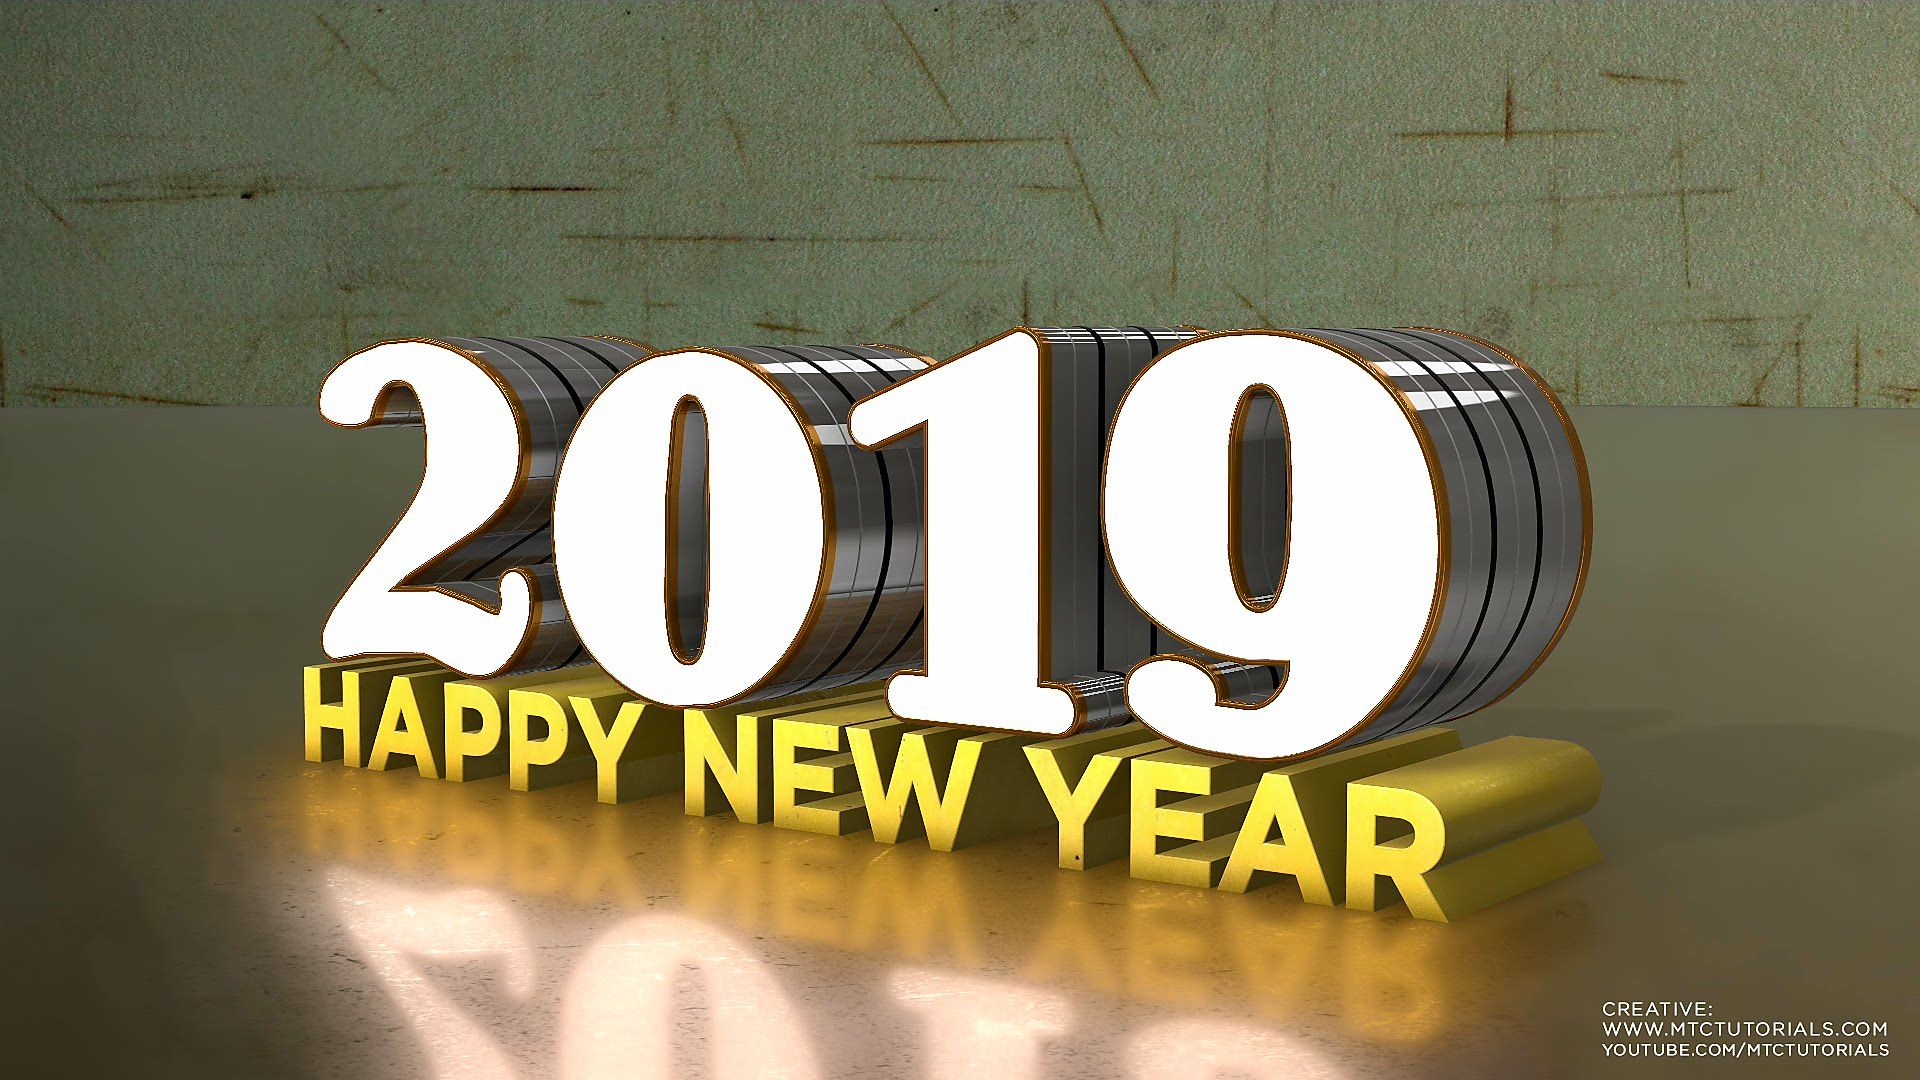 Happy new year 3d text new style